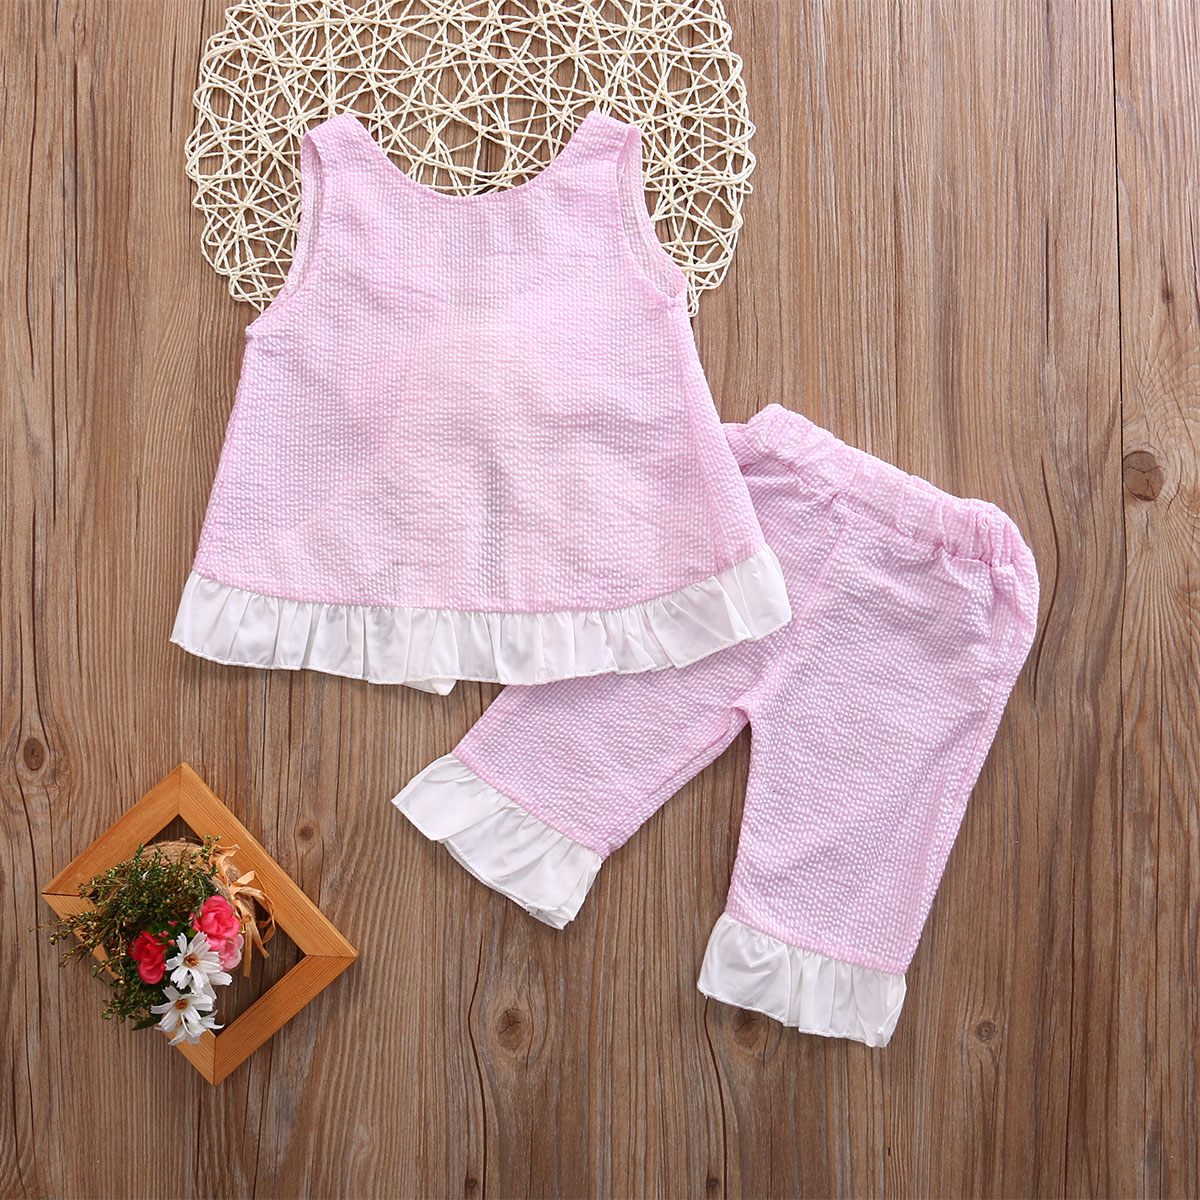 Newest Summer Kids Baby Girls O-Neck Cotton Summer Outfits Clothes Bow Sleeveless T-shirt Tops+Pants 2PCS Set 1-6Y with